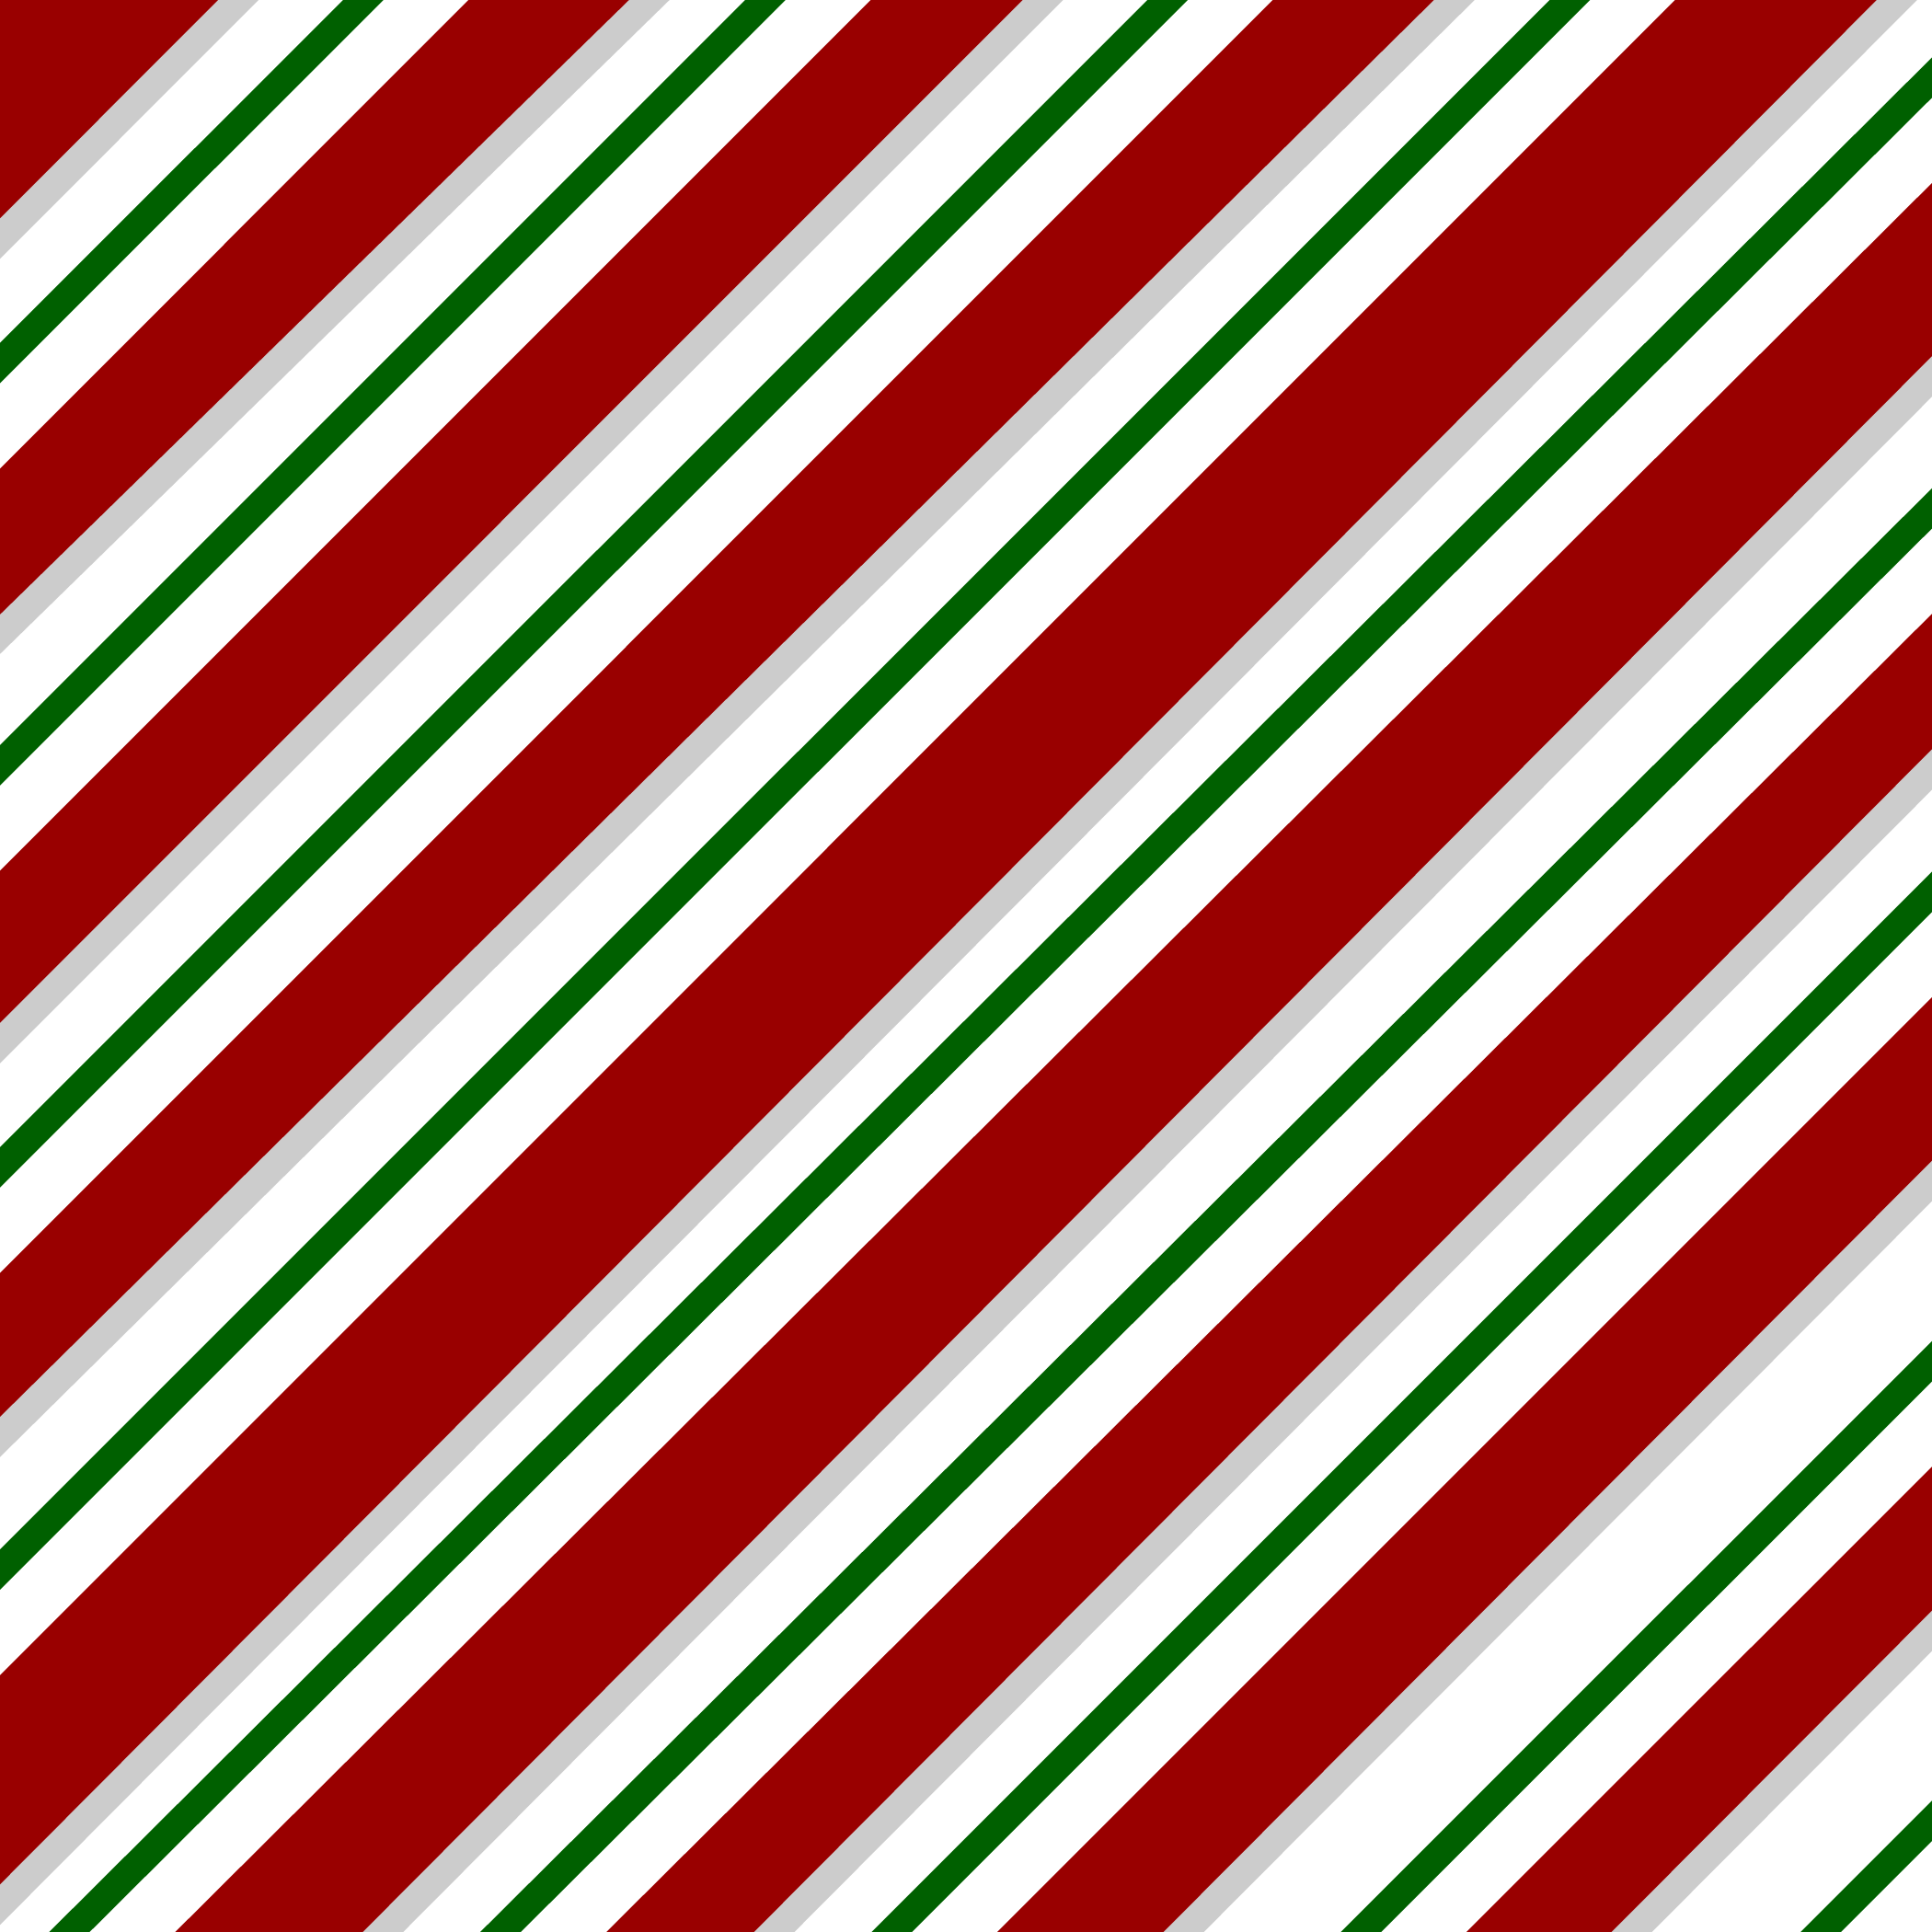 Candy cane background clipart freeuse Candy Cane Background - PowerPoint Backgrounds for Free PowerPoint ... freeuse